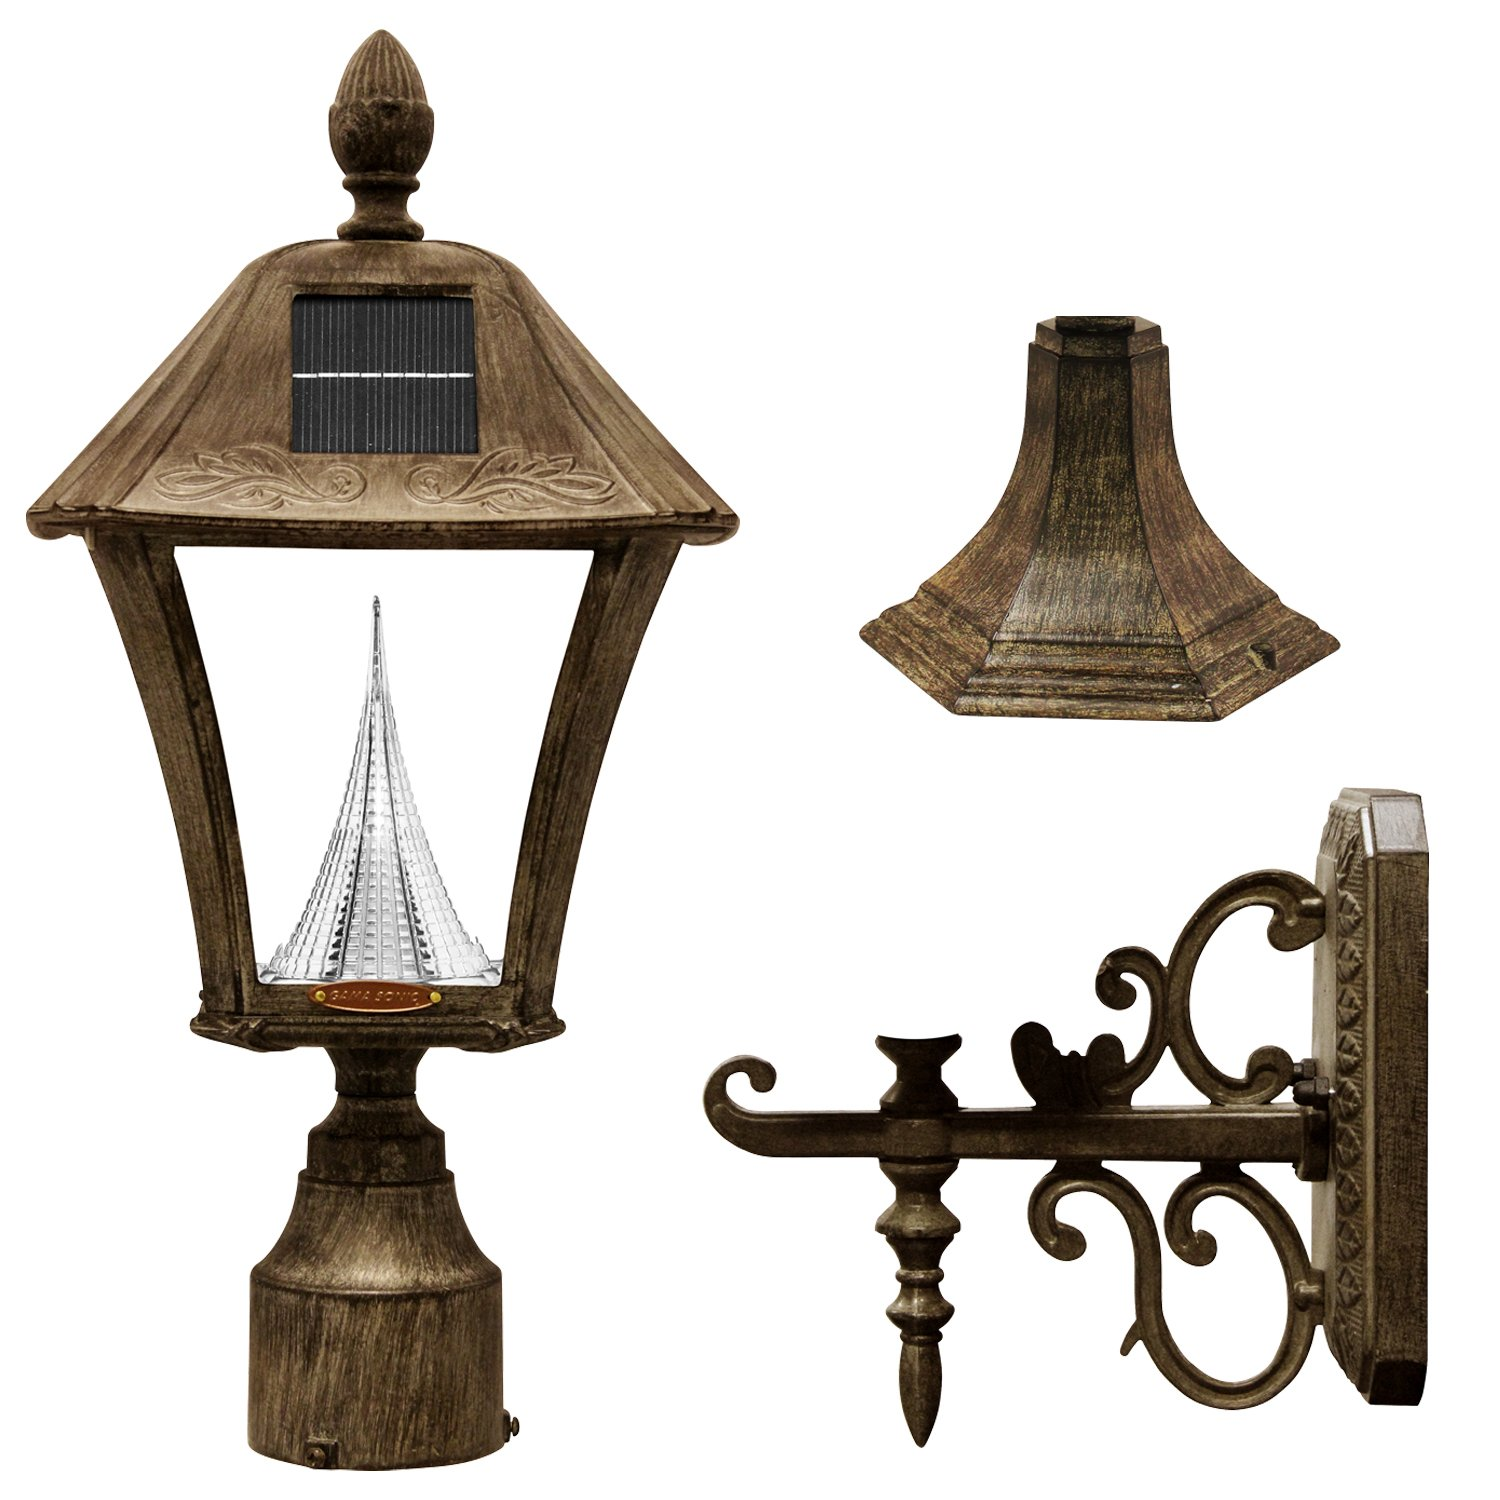 Gama Sonic Baytown Solar Outdoor Lamp GS-106FPW-WB - Pole/Pier/Wall Mount Kit - Weathered Bronze Finish by Gama Sonic